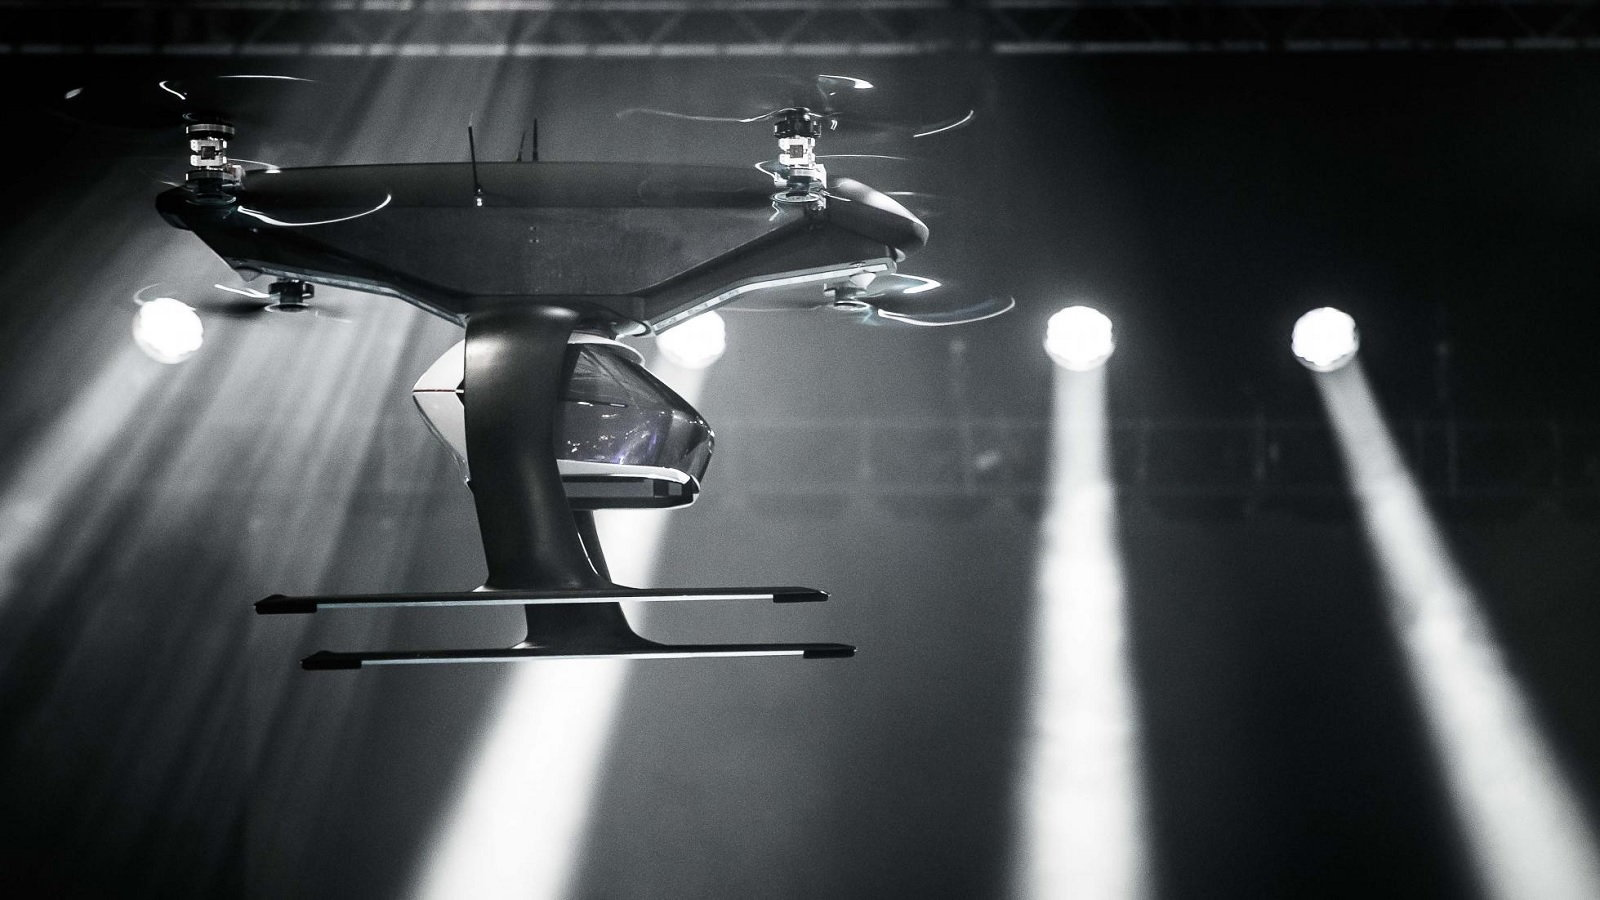 Audi Has a Flying Taxi Concept So There's That